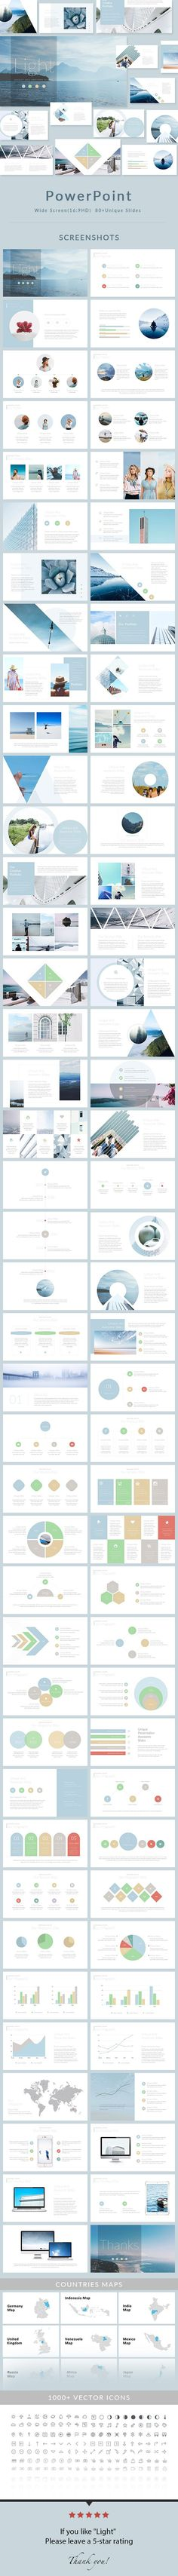 Light Keynote Presentation Template Business Keynote Templates - Keynote - Ideas of Keynote - Light Keynote Presentation Template Business Keynote Templates Layout Design, Graphisches Design, Slide Design, Game Design, Keynote Design, Brochure Design, Keynote Presentation, Design Presentation, Book Portfolio